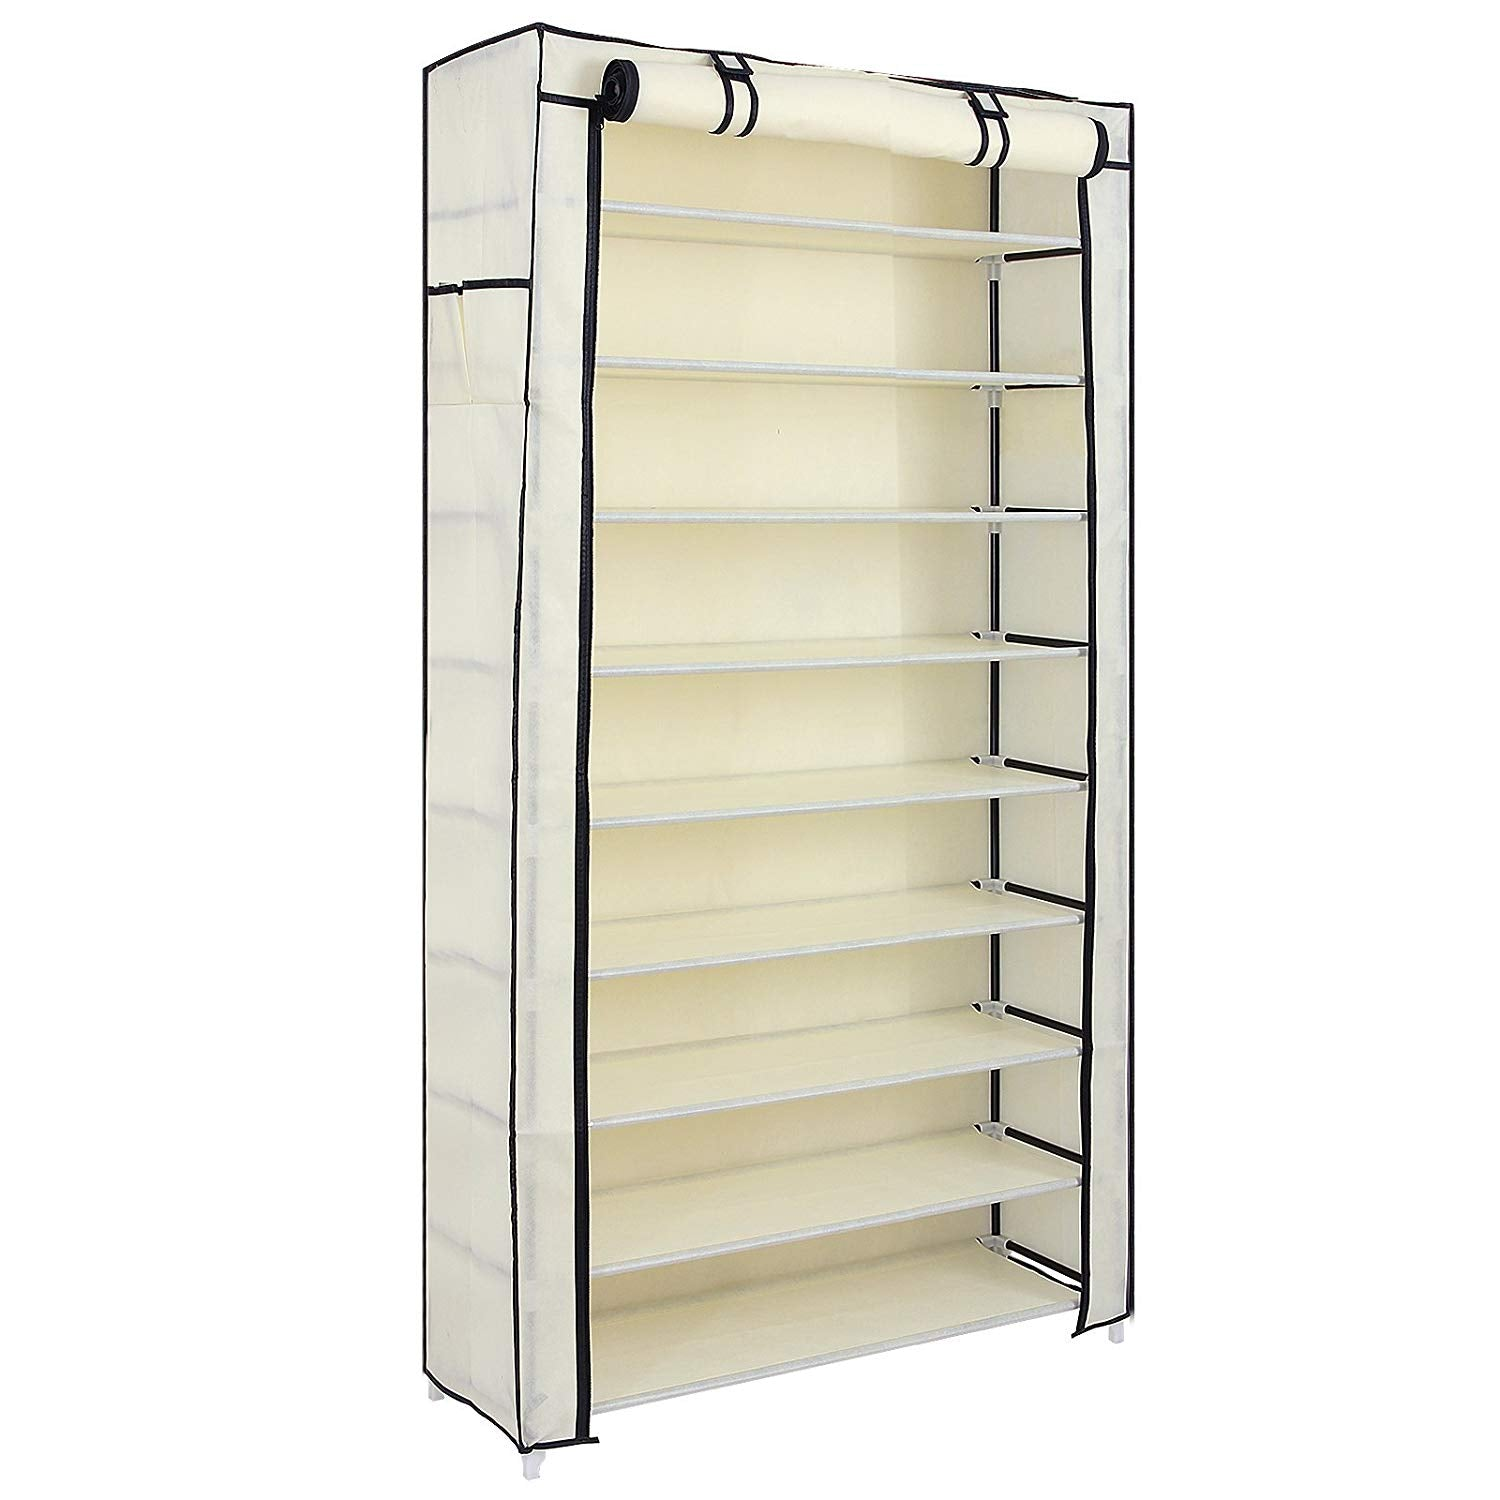 SONGMICS 10 Tiers Shoe Rack with Dustproof Cover Closet Shoe Storage Cabinet Organizer Beige URXJ36M